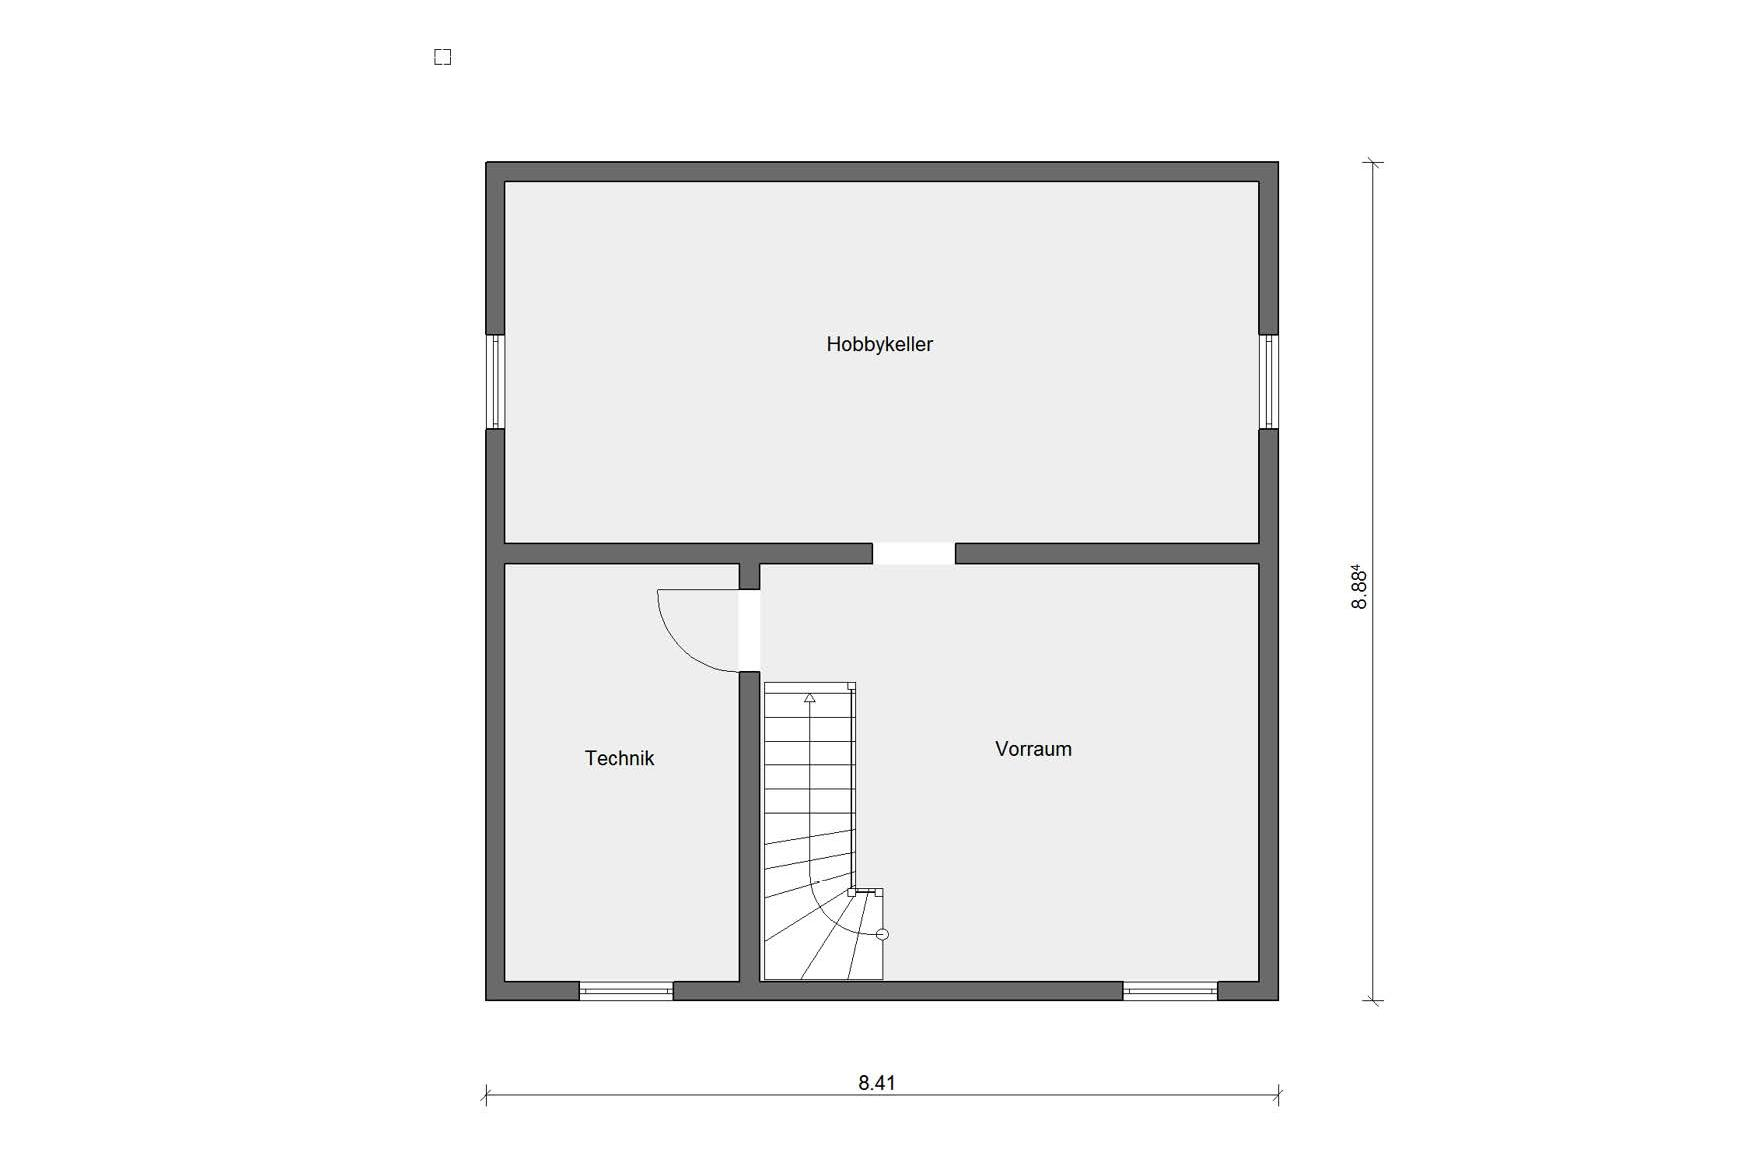 Basement floor plan E 15-128.3 Houses with offset pent roof